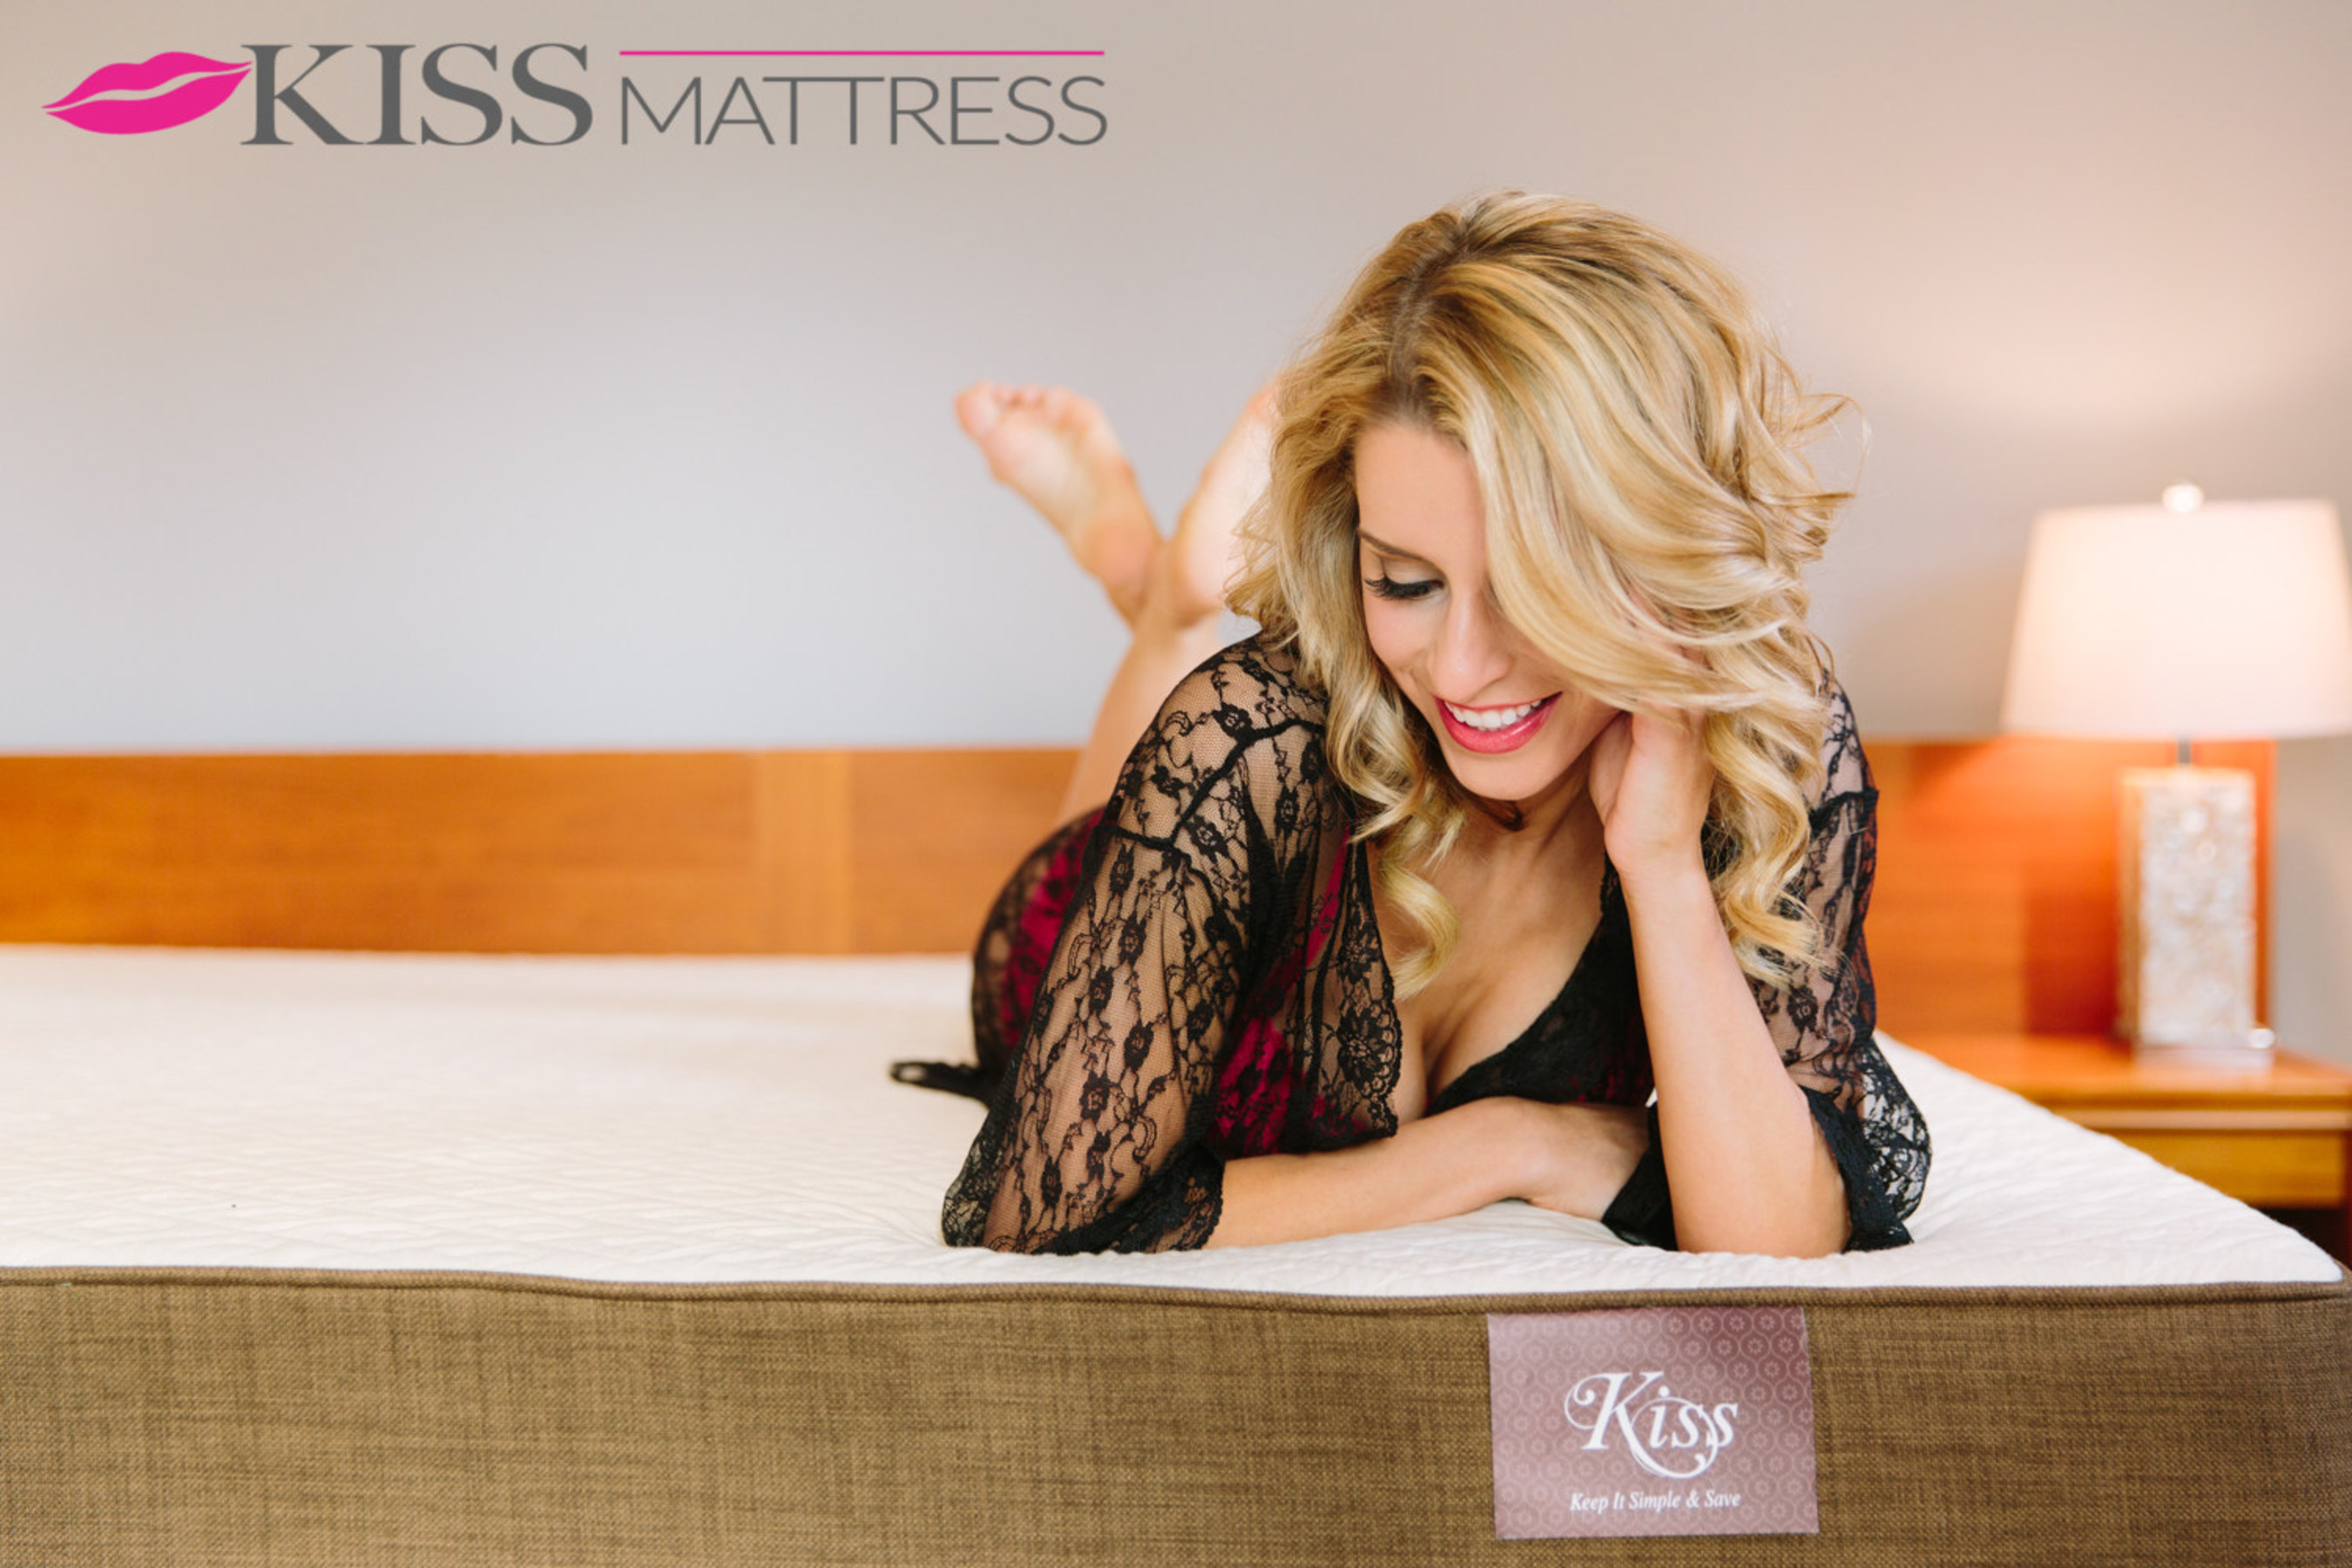 Kiss Mattress wants to make the bedroom sexy again and that starts with making a mattress easier to buy.